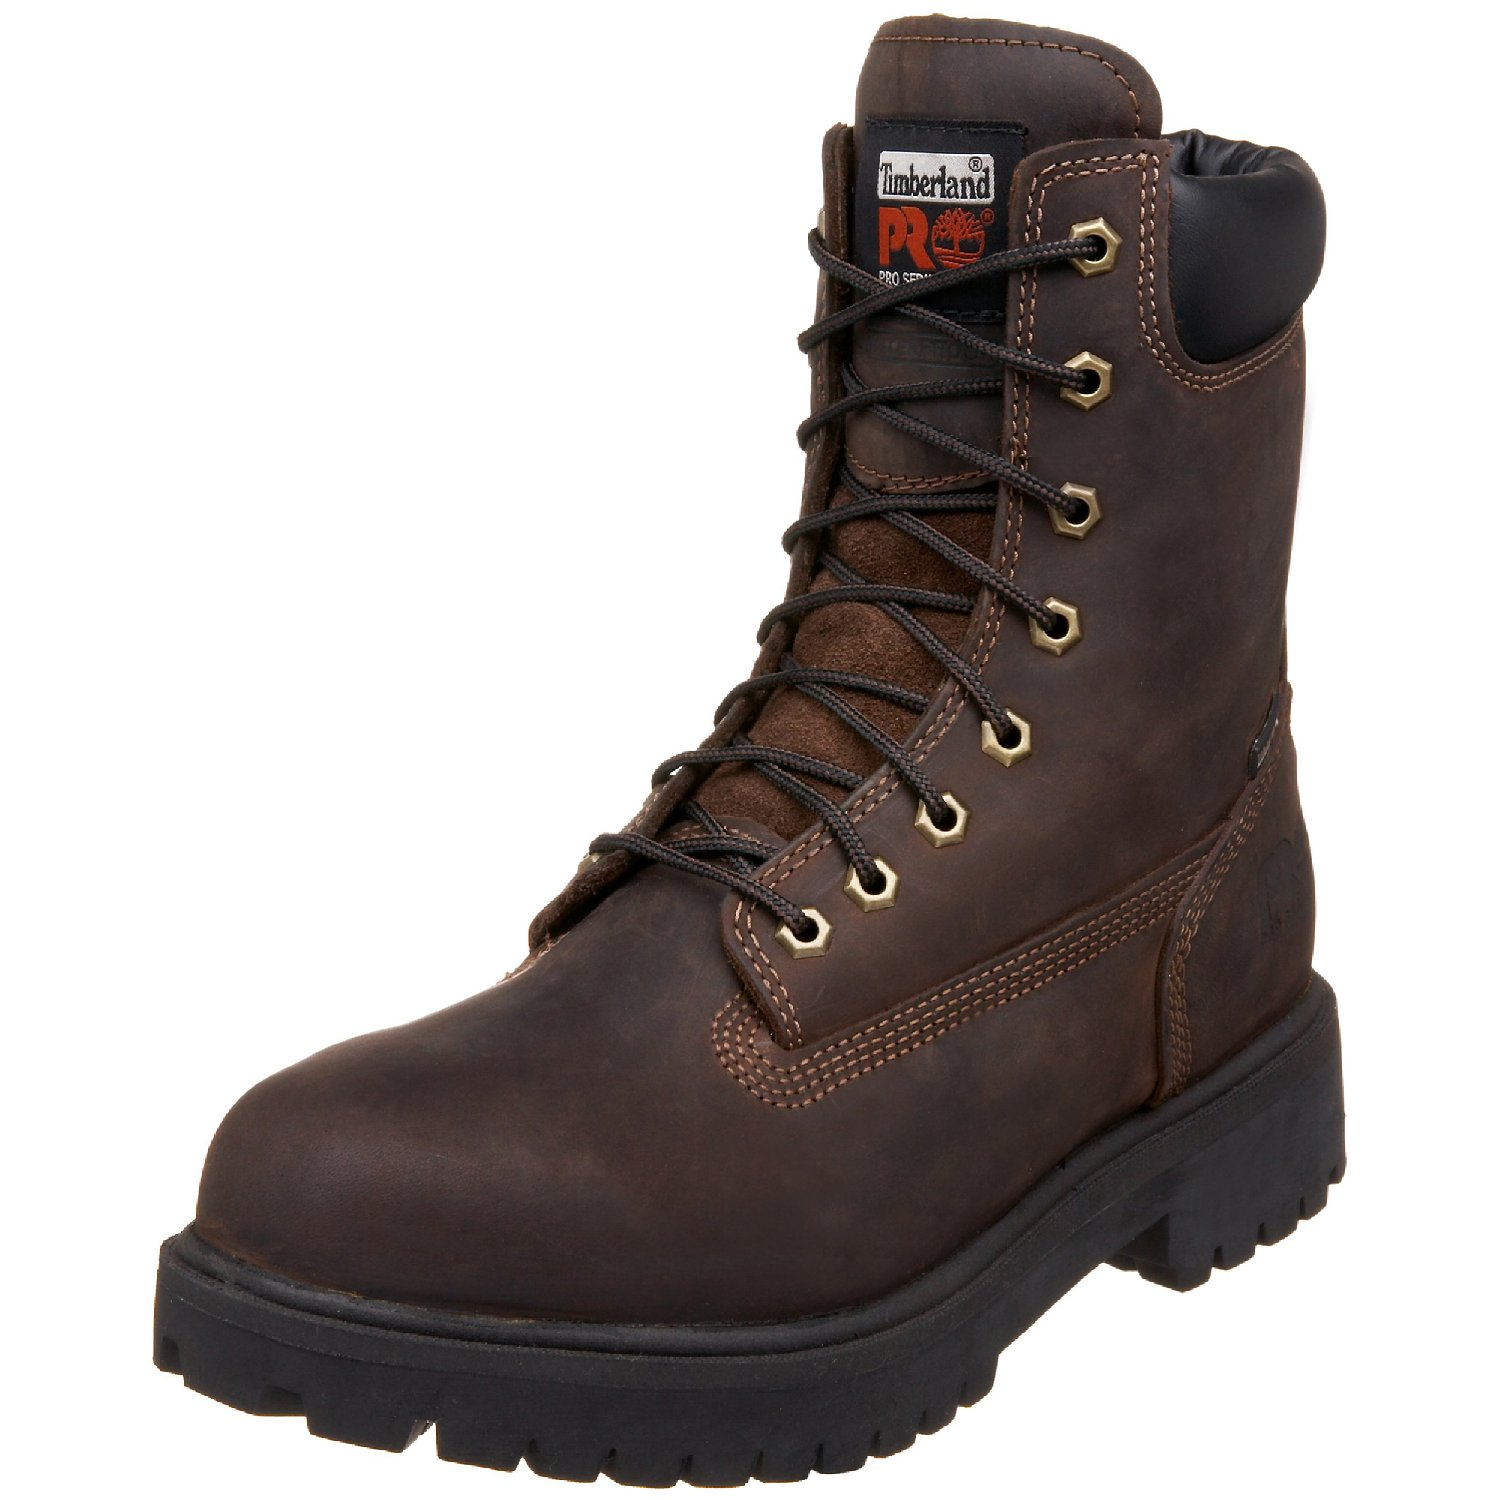 Timberland PRO Men's Pitboss 6 Soft-Toe Boot by Timberland